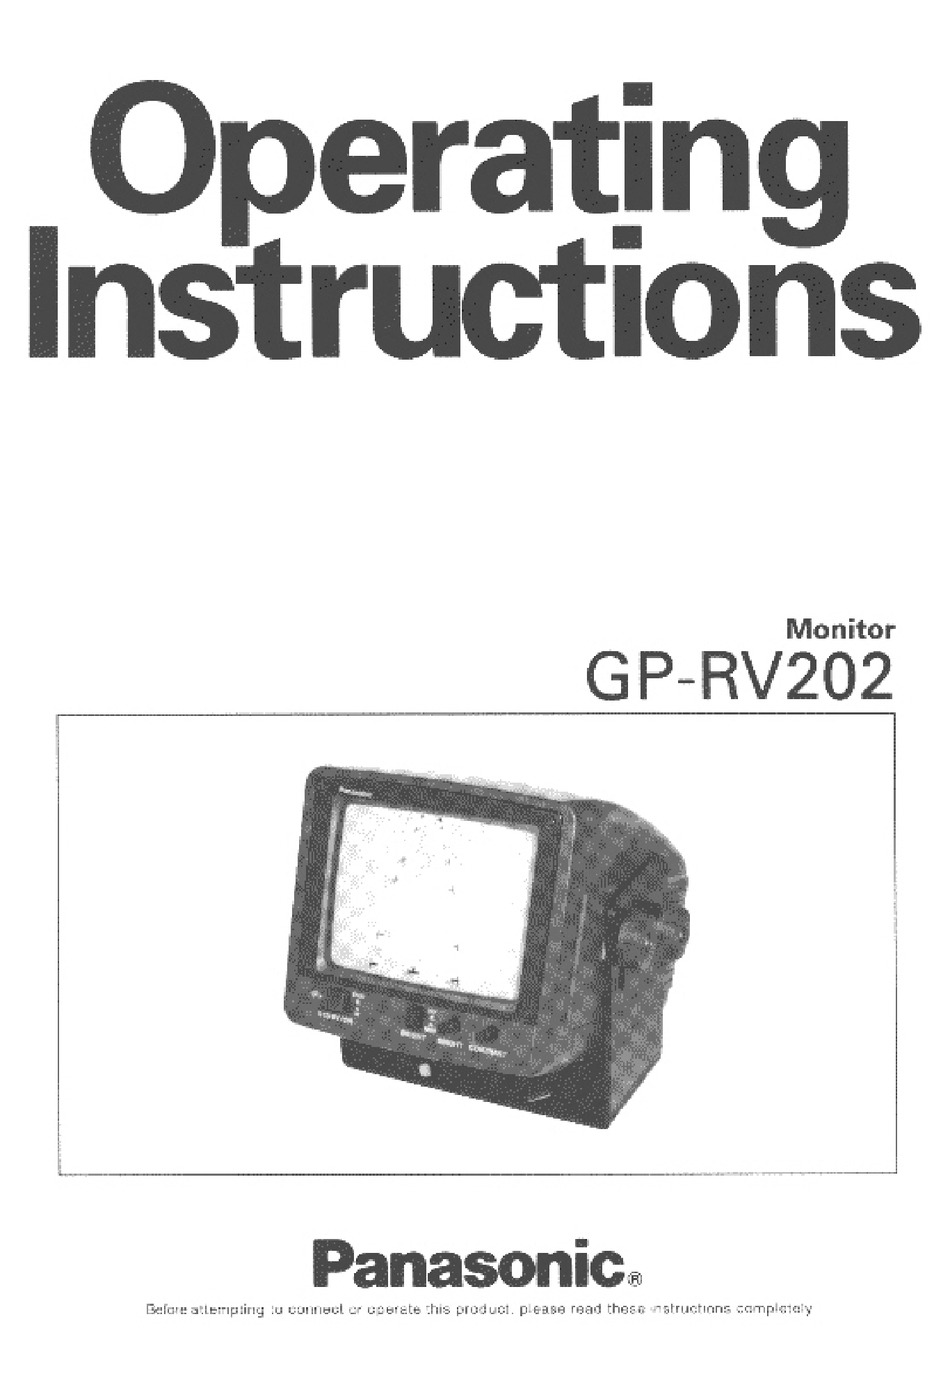 PANASONIC GP-RV202 OPERATING INSTRUCTIONS MANUAL Pdf